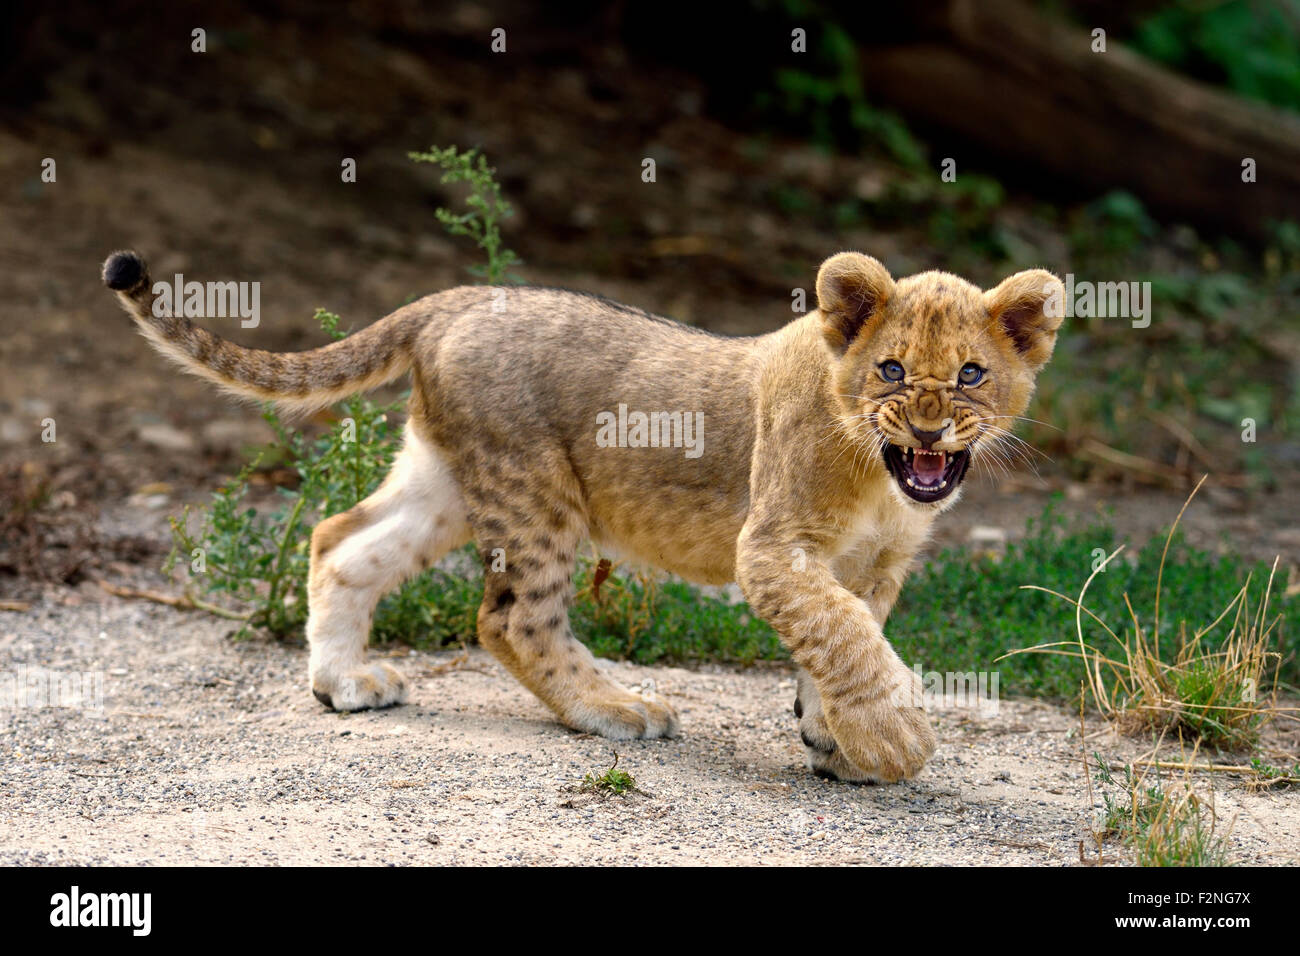 Young lion (Panthera leo), snarling, captive - Stock Image